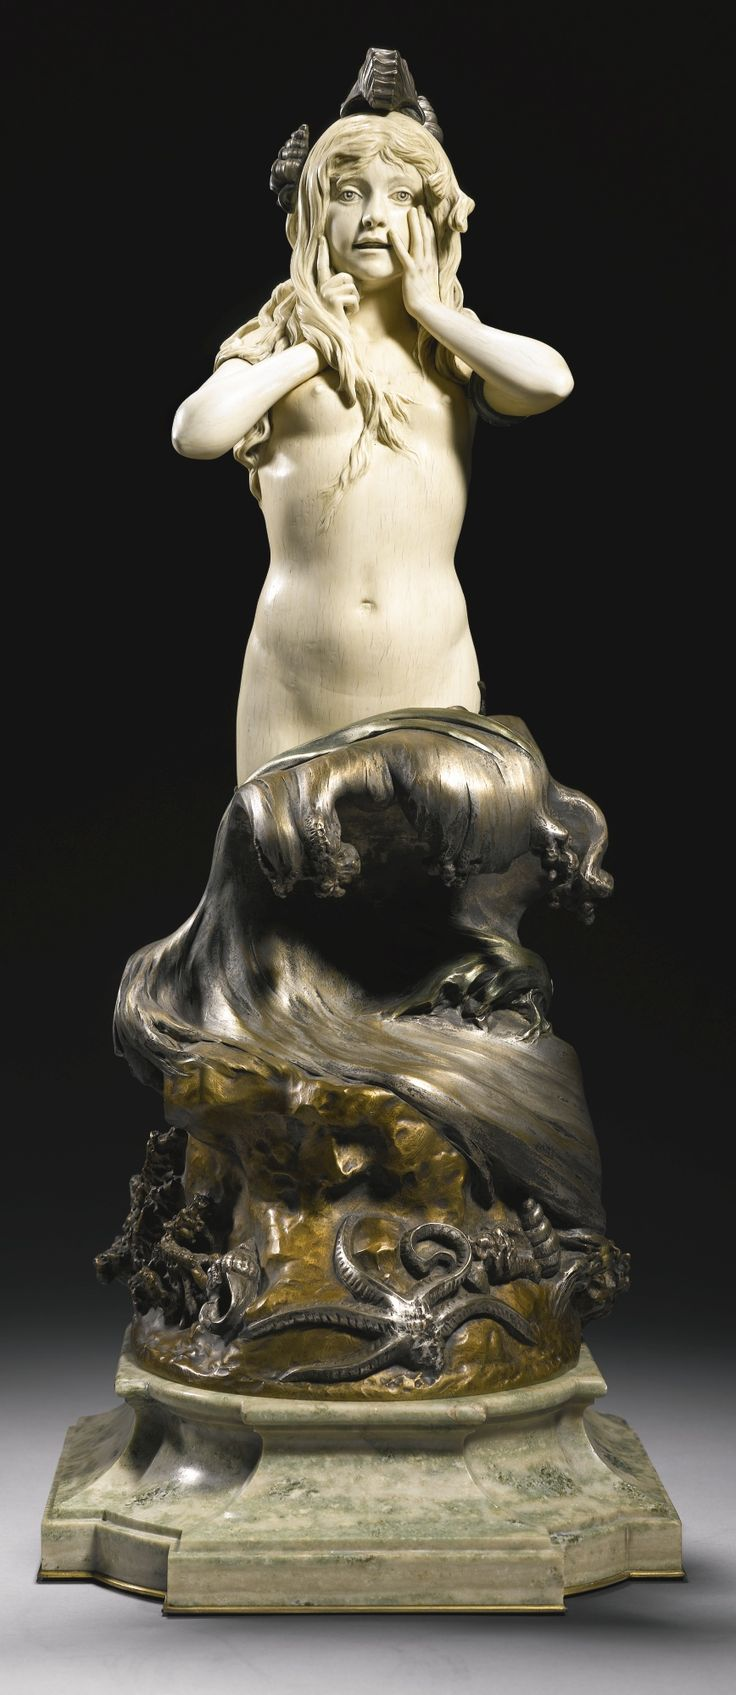 Walter Winans -  AMERICAN 1852-1920 -  THE MERMAID -  silvered and gilt bronze, and ivory, on a veined light green marble base -   signed and dated: Walter Winans 1905